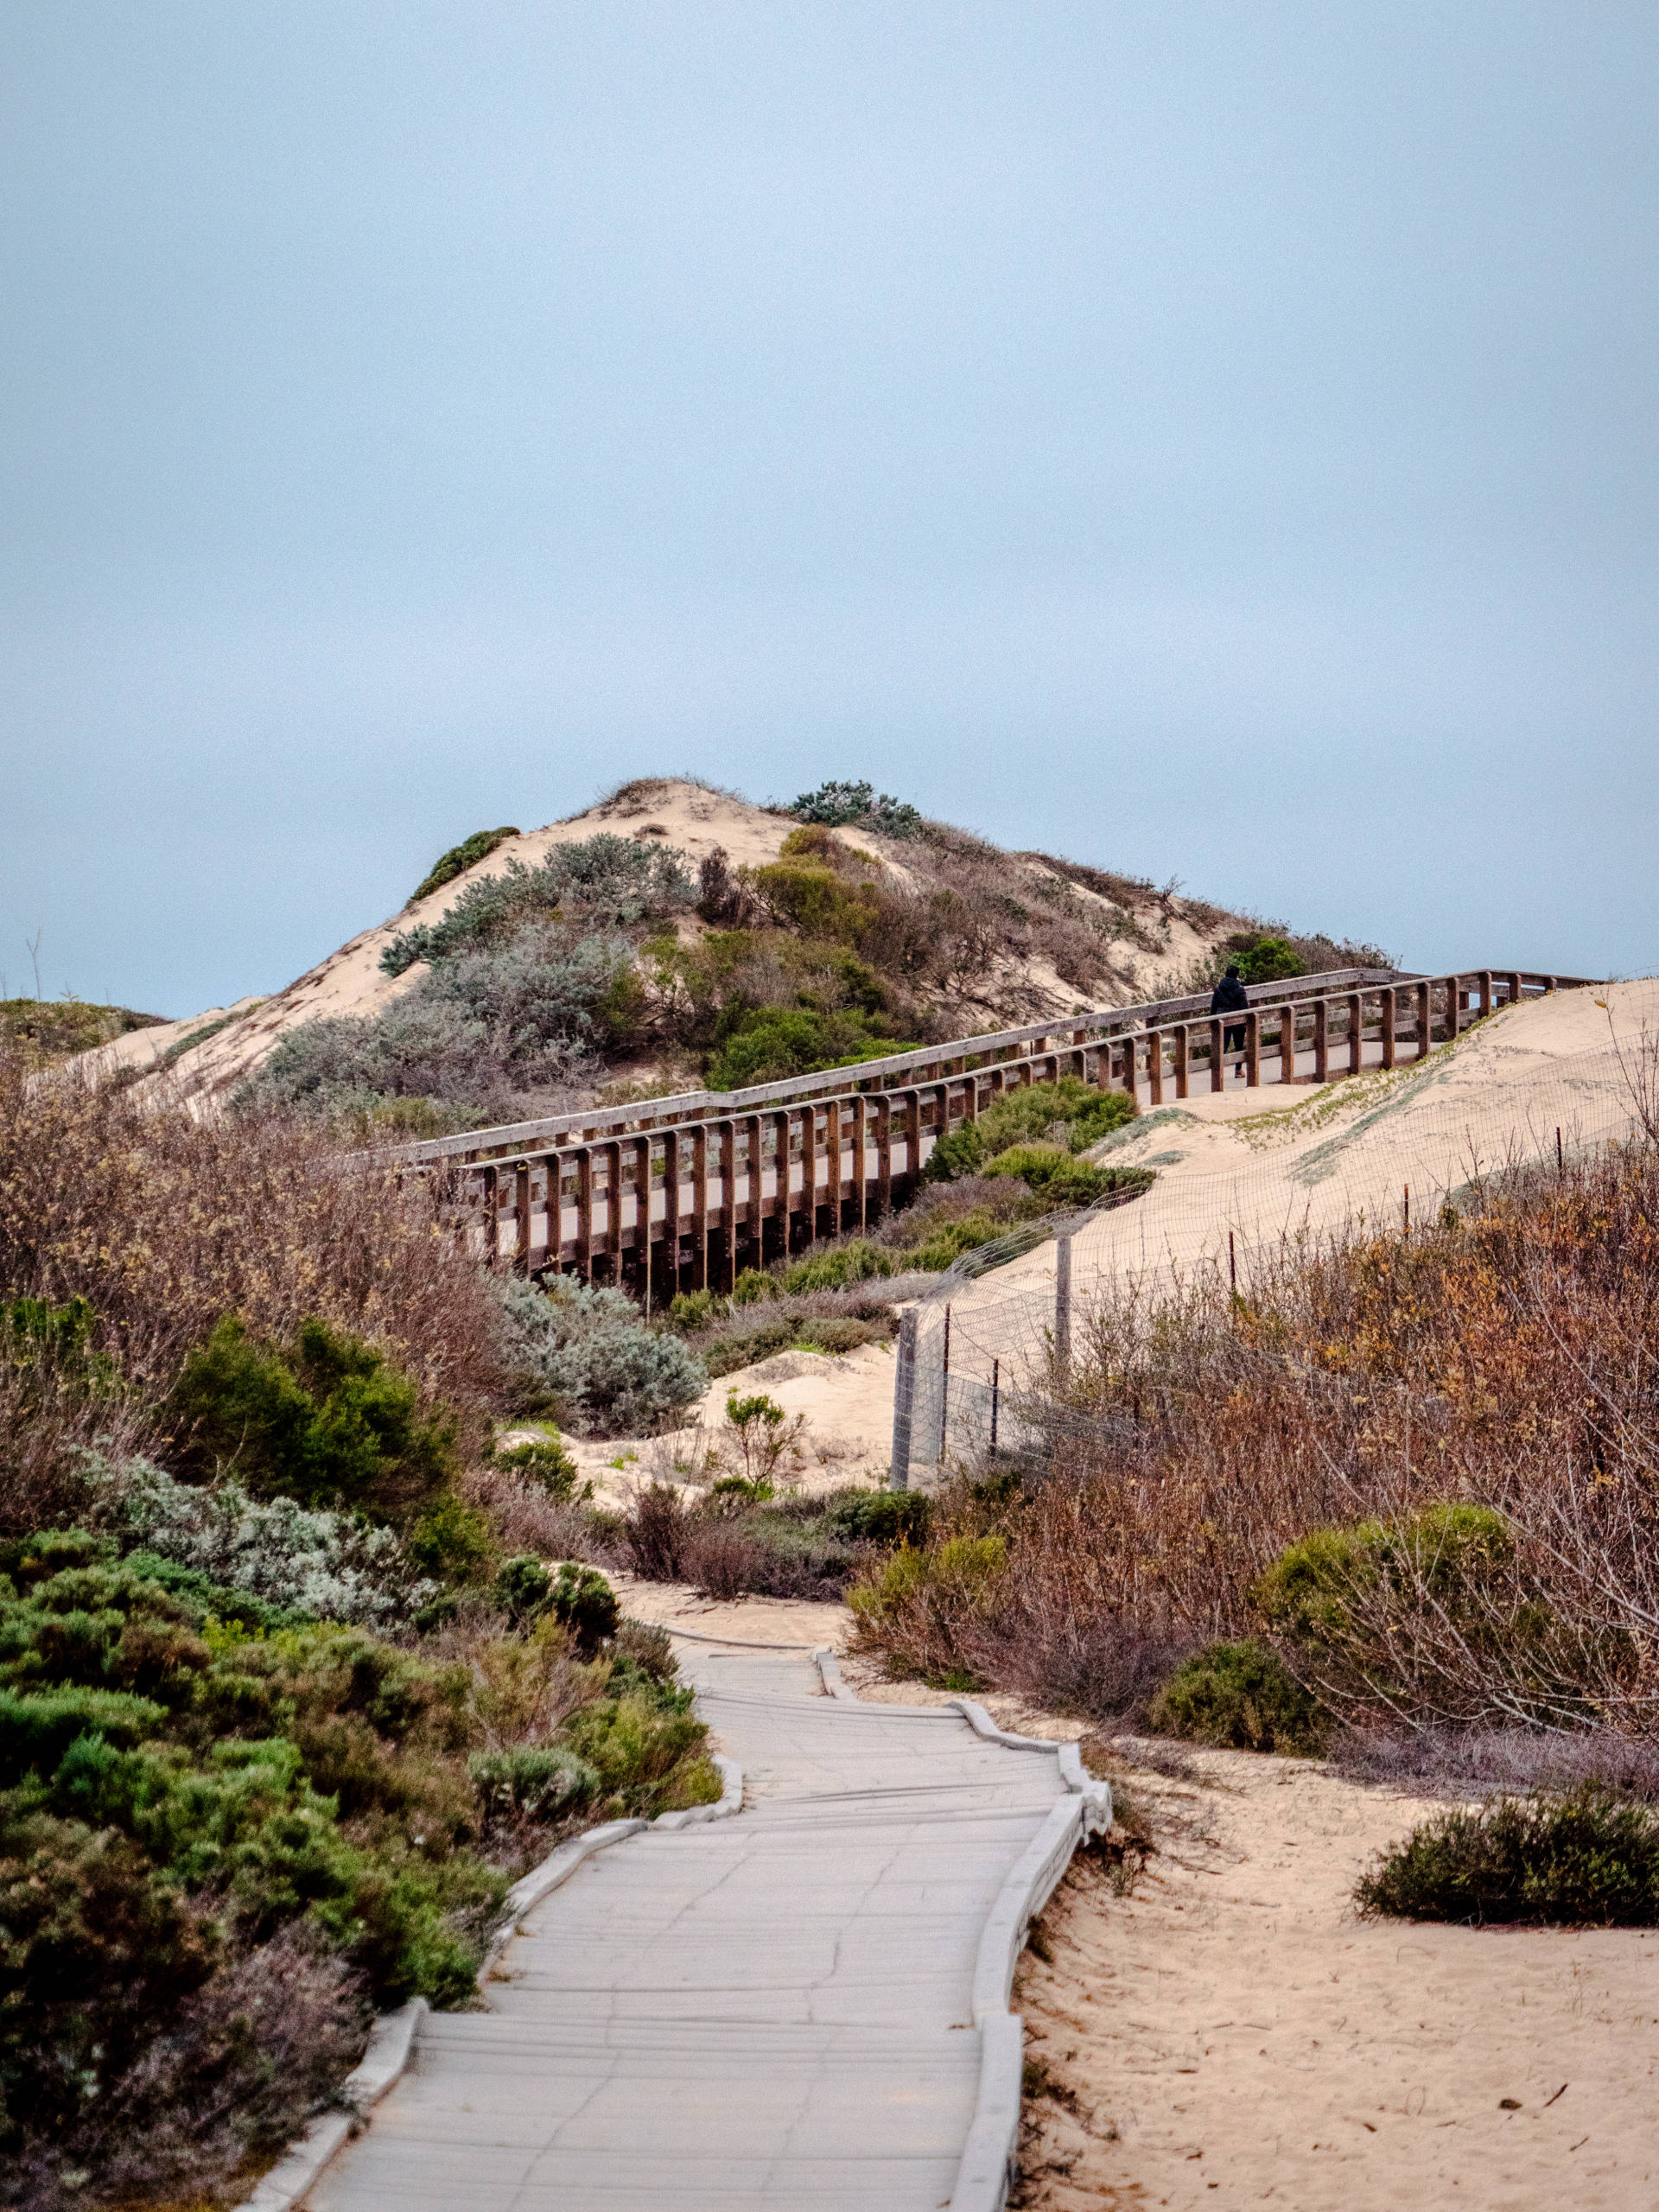 Board walk trail up sand dune